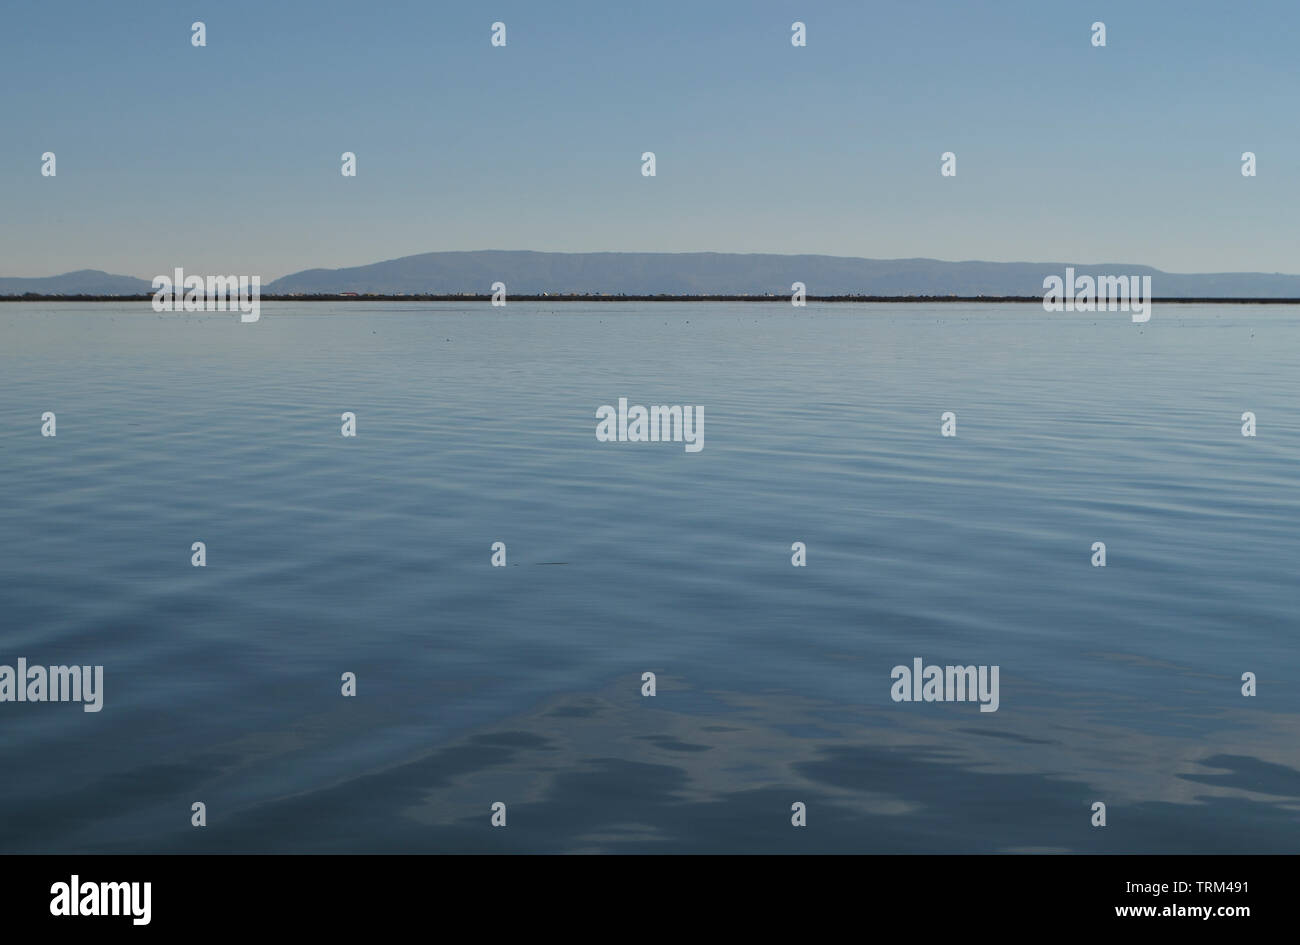 Peru,Puno,Titicaca. View of Titicaca Lake. - Stock Image